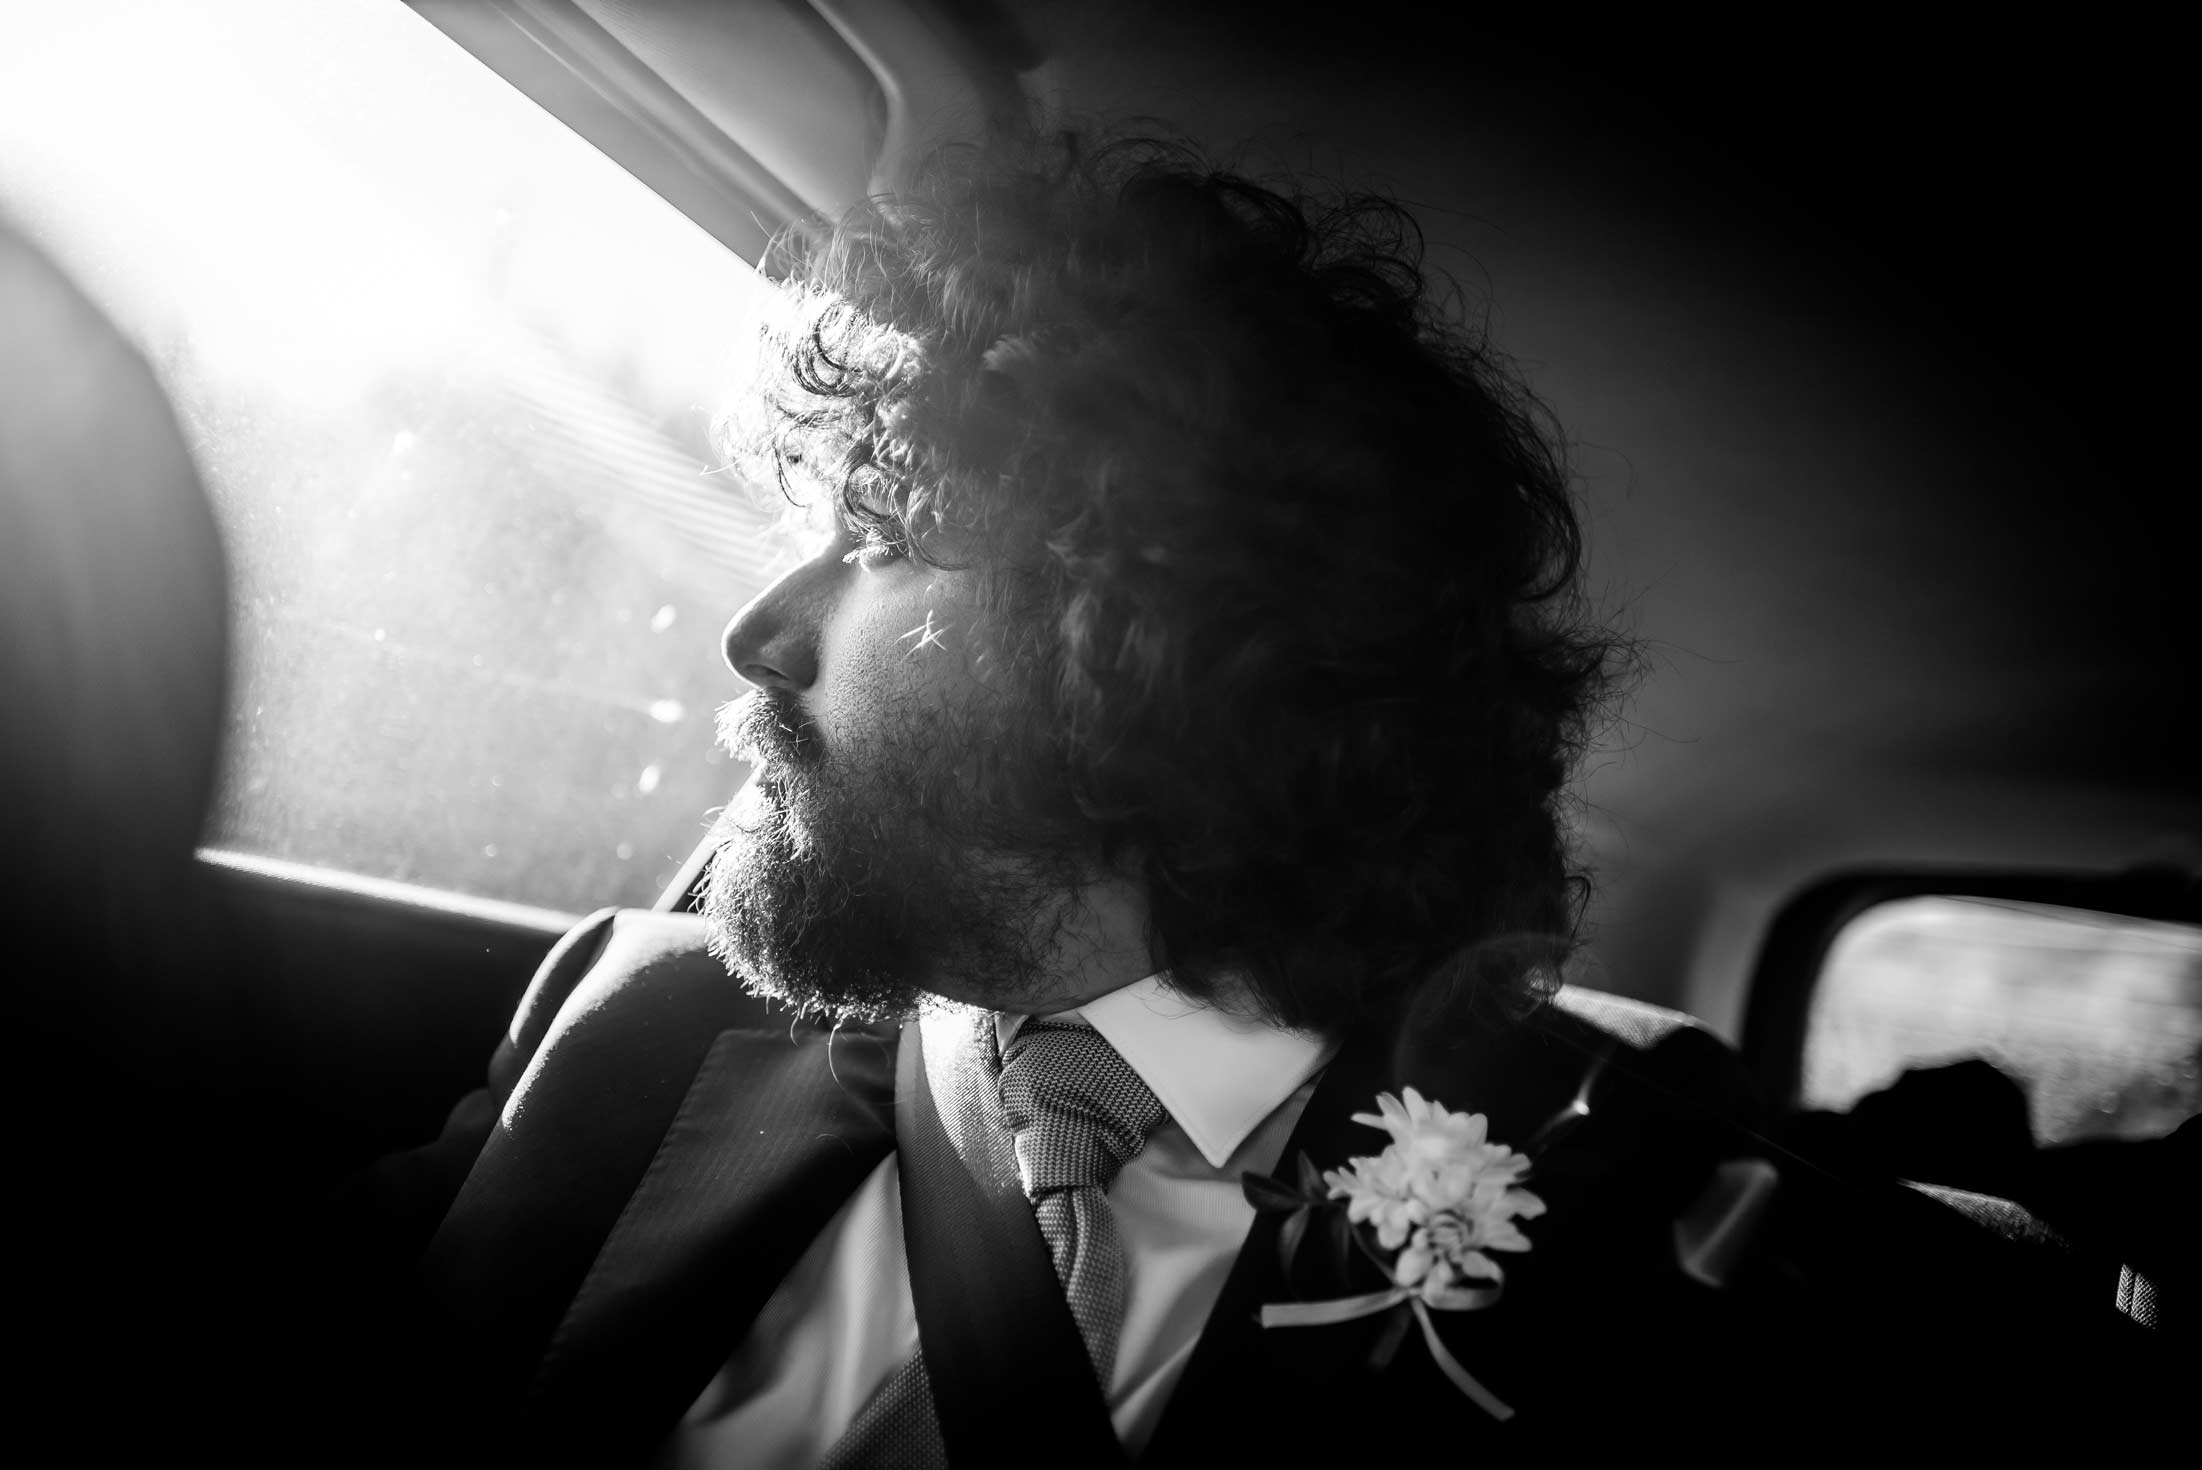 Reportage-Wedding-Photography-in-Italy-Groom